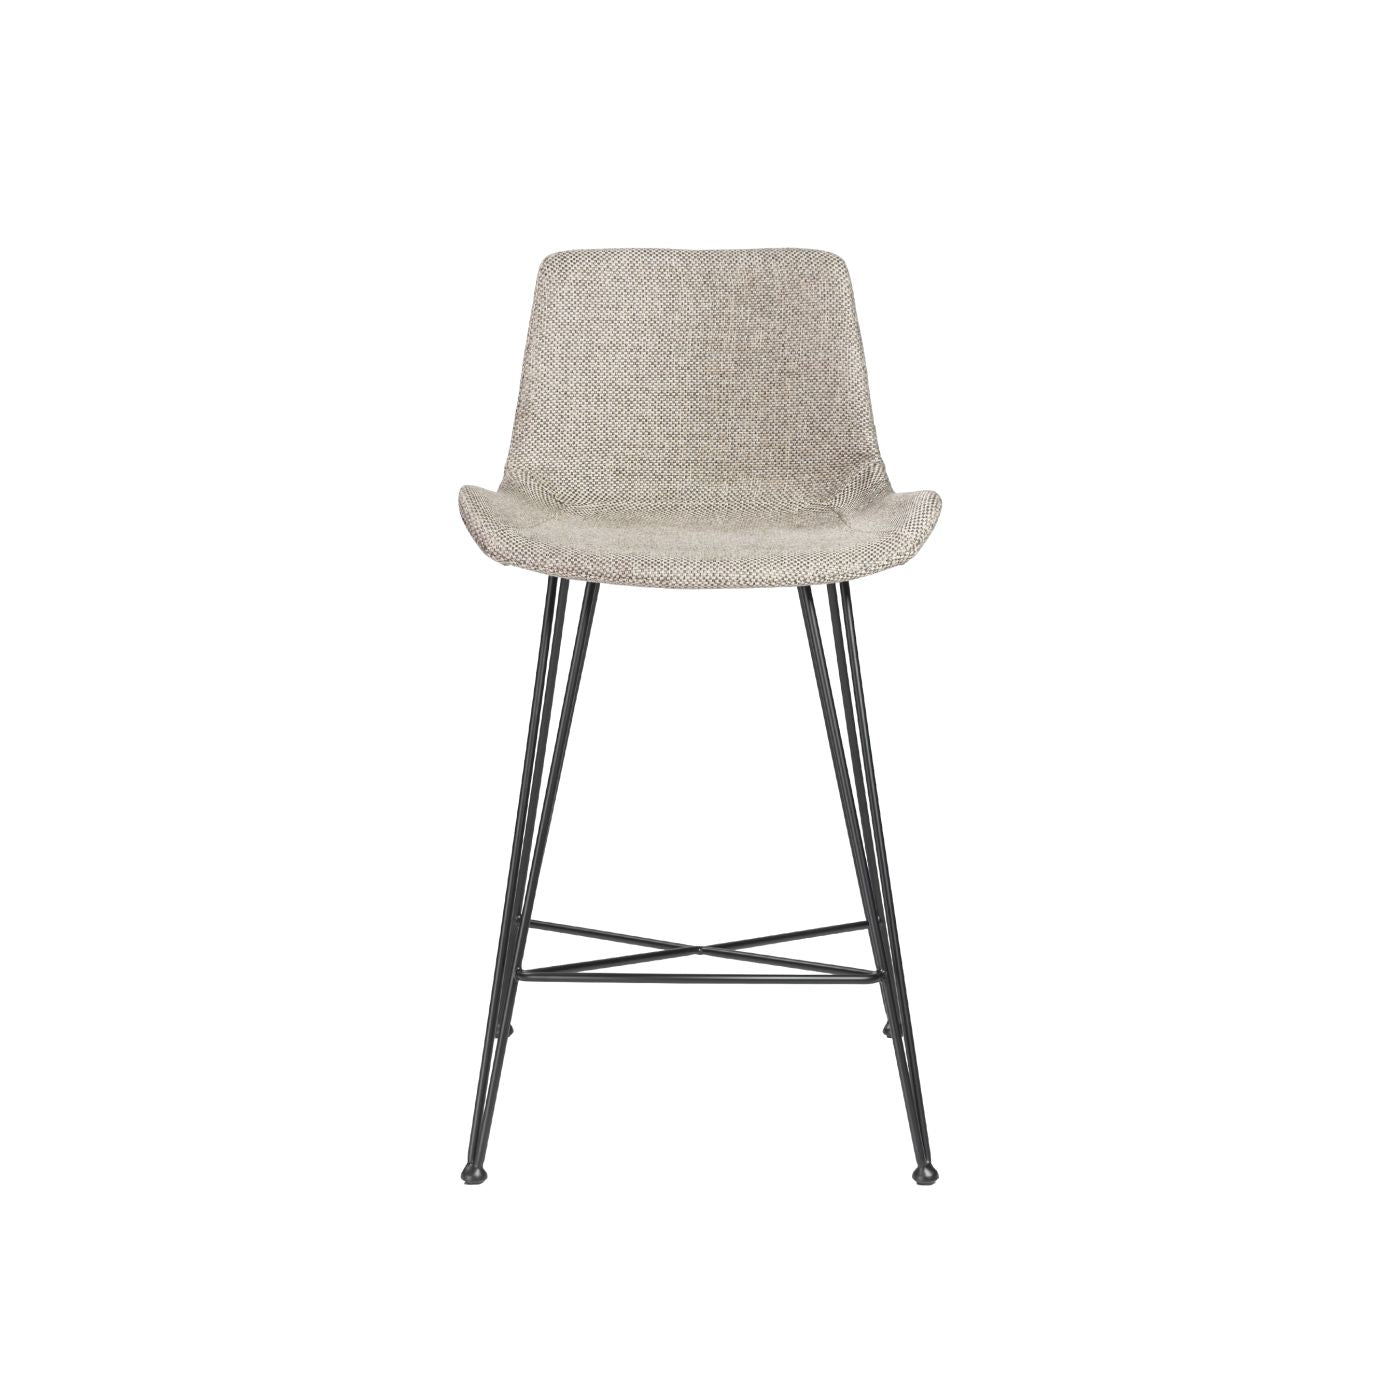 Wondrous Buy Euro Style Euro 30485Ltgry Ura C Counter Stool In Light Gray Fabric With Matte Black Legs At Contemporary Furniture Warehouse Cjindustries Chair Design For Home Cjindustriesco